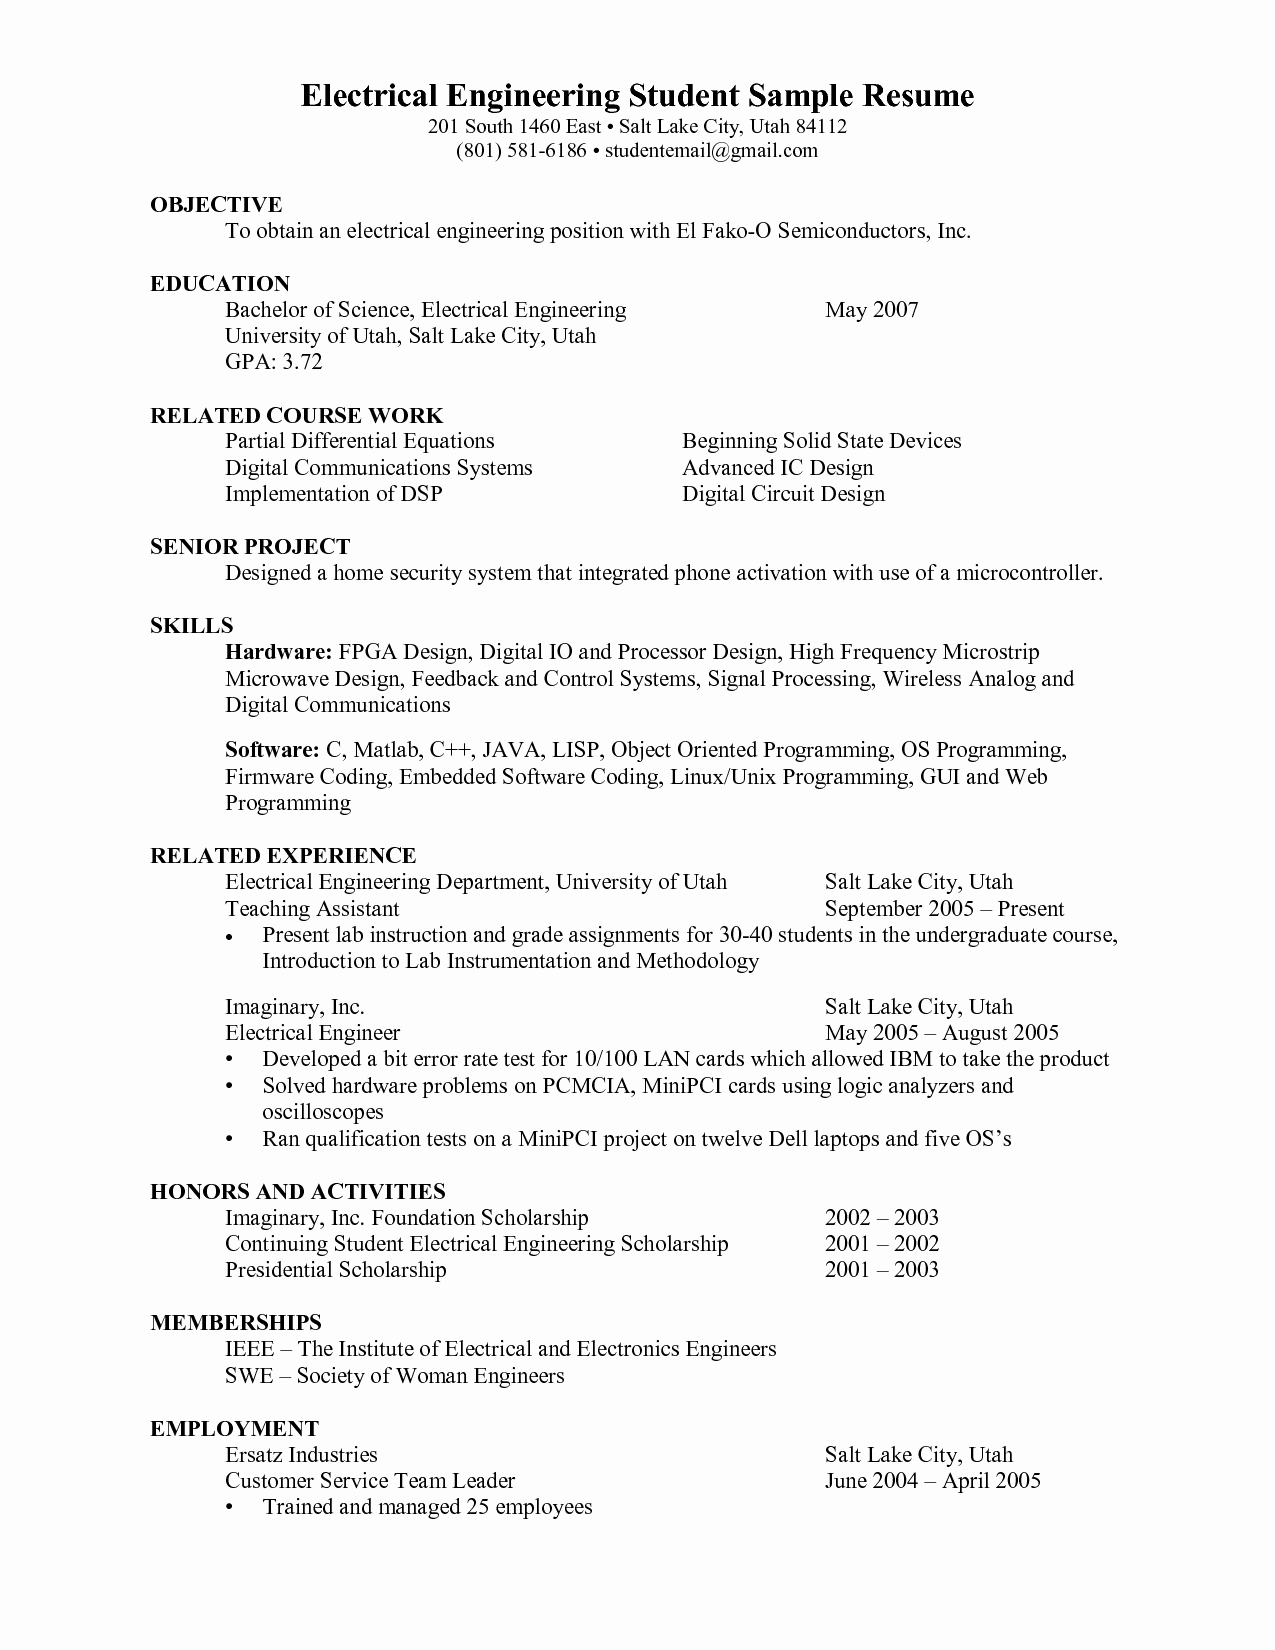 Engineering Student Resume Examples New Engineering Student Resume Google Search